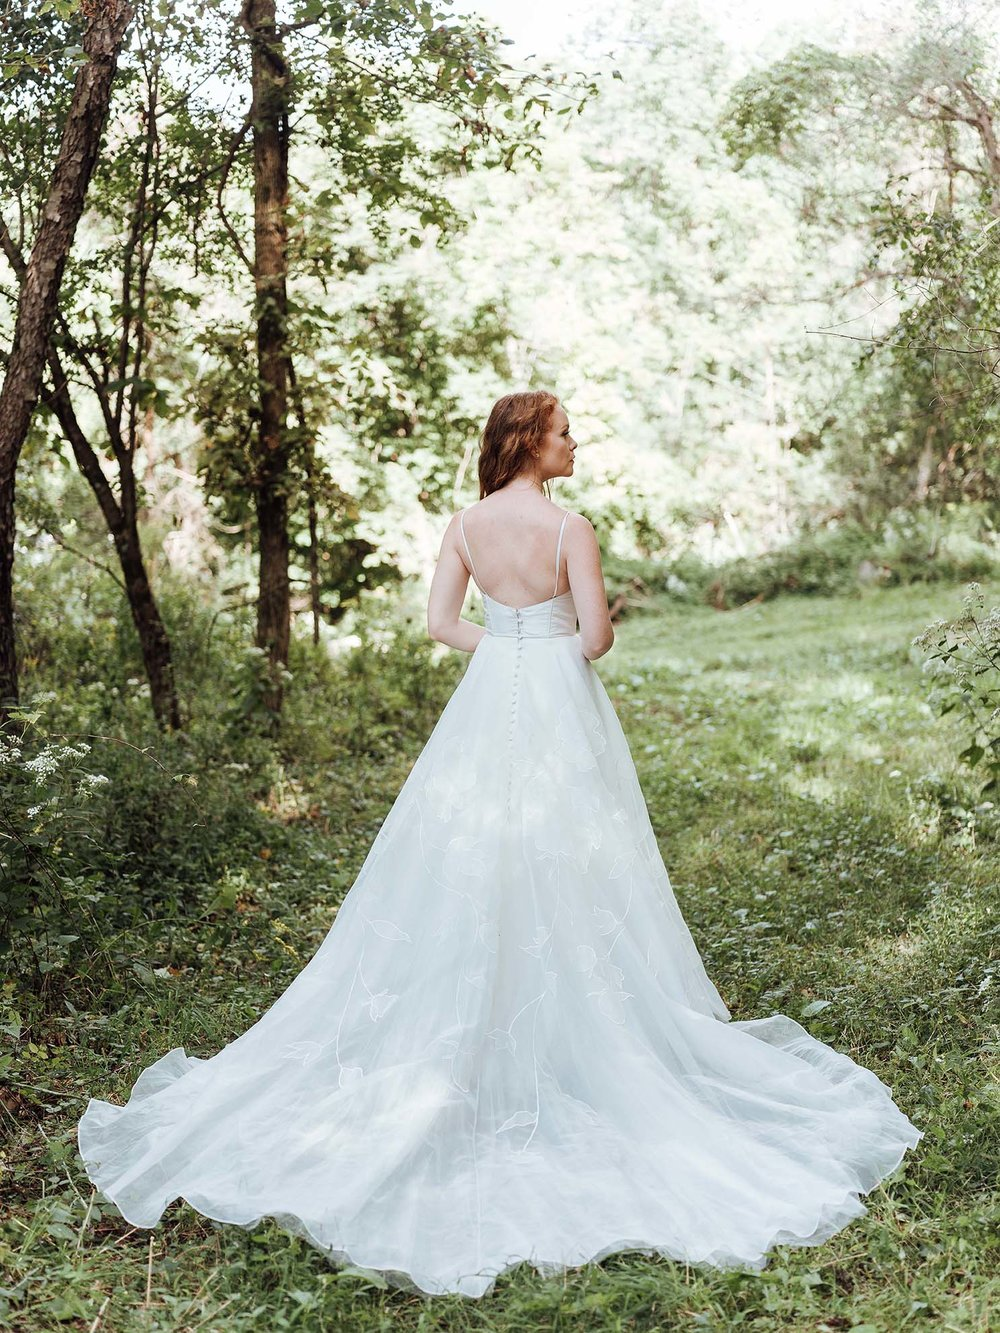 WSPCo-Gather-Greene-Rebecca-Schoneveld-Bridal-478_wedding_ballgown_flower_designs_boho.jpg